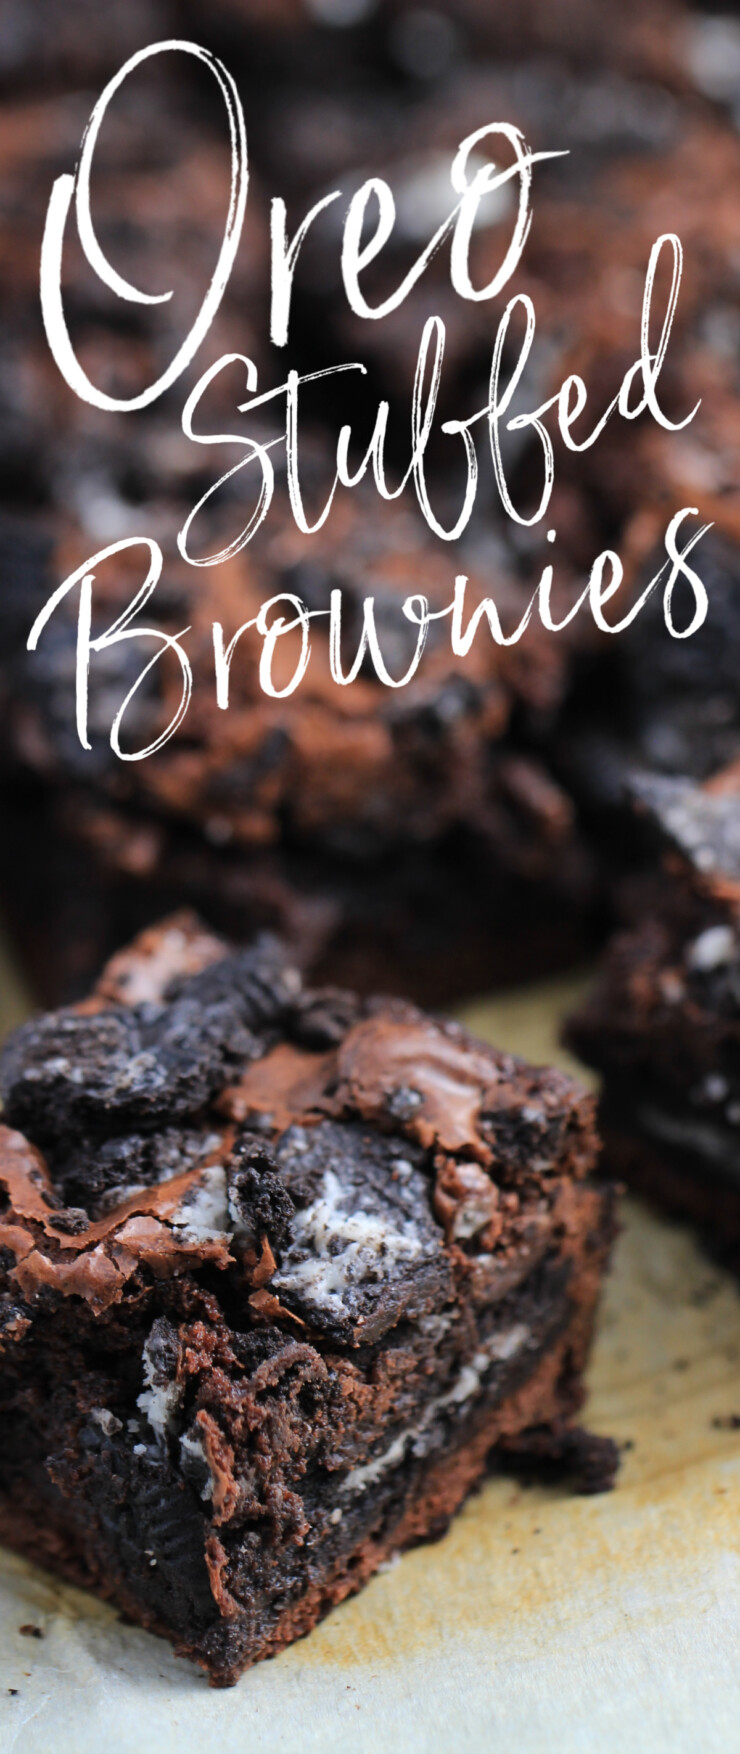 Delicious Oreo Stuffed Brownies – fudgy brownies layered with Oreos and topped with even more Oreos.  Brownies don't get much better than this!